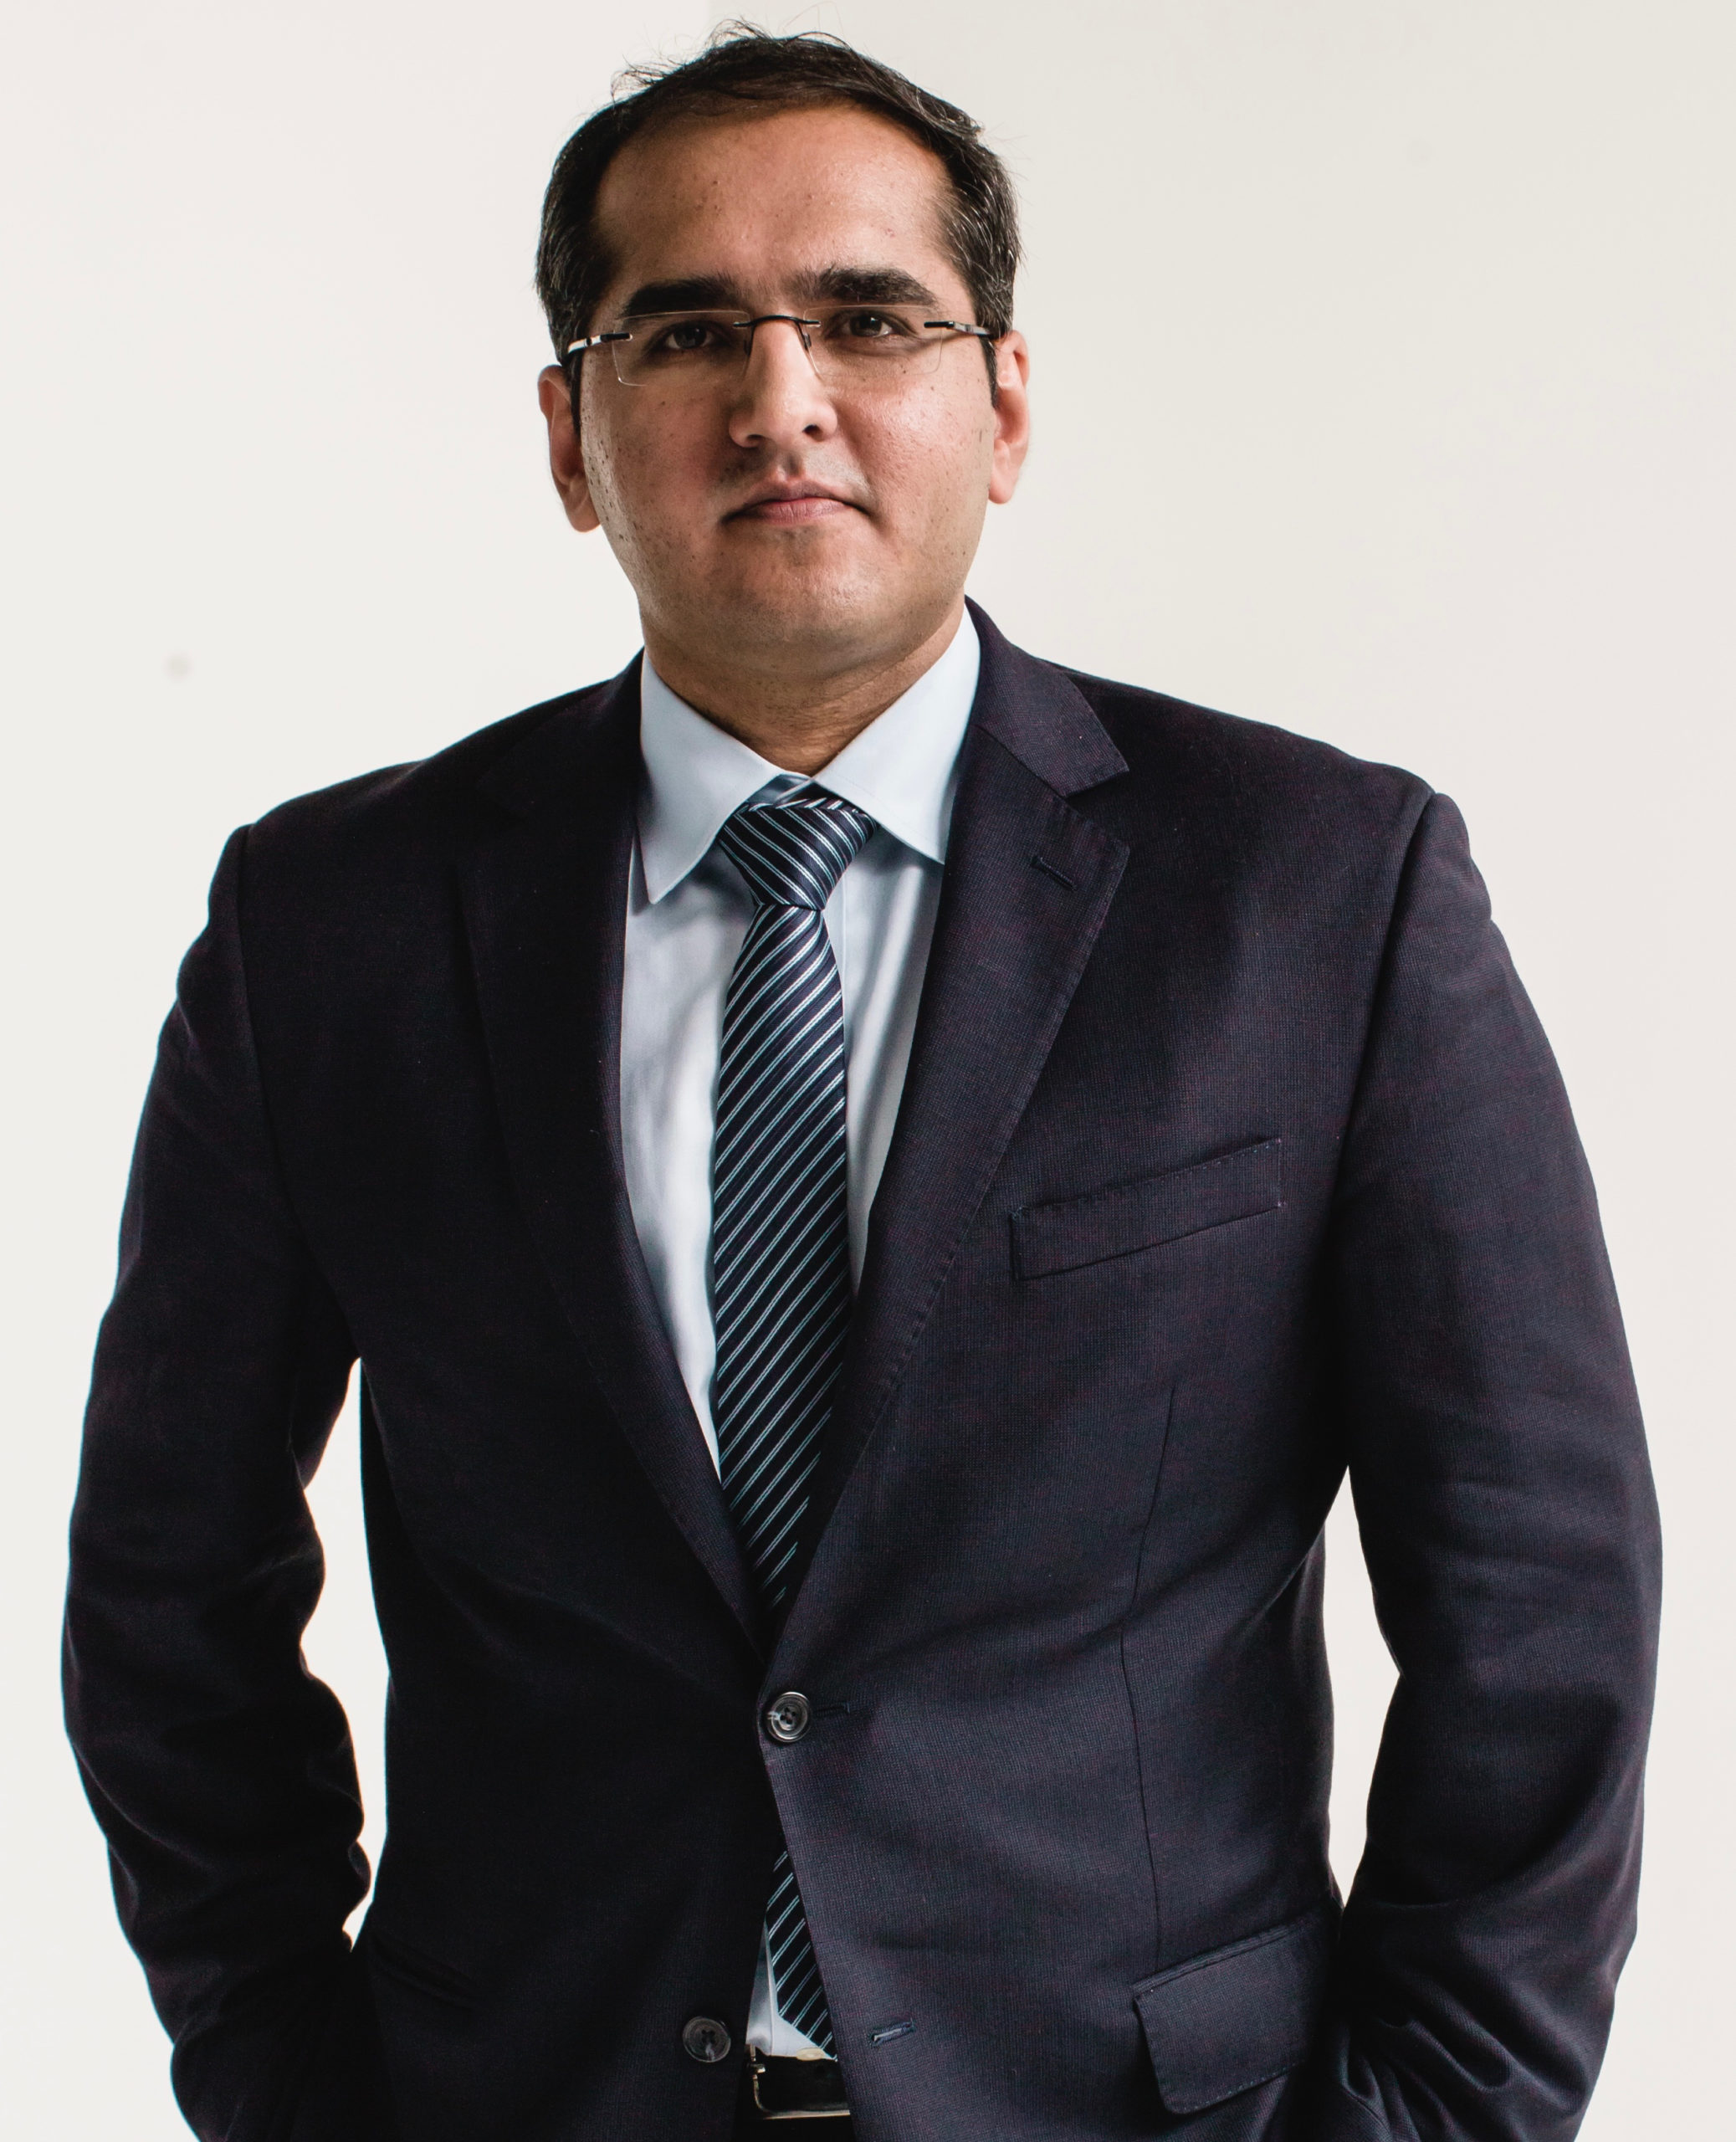 Dhaval Ponda, Global Head of Media & Entertainment Business at Tata Communications.